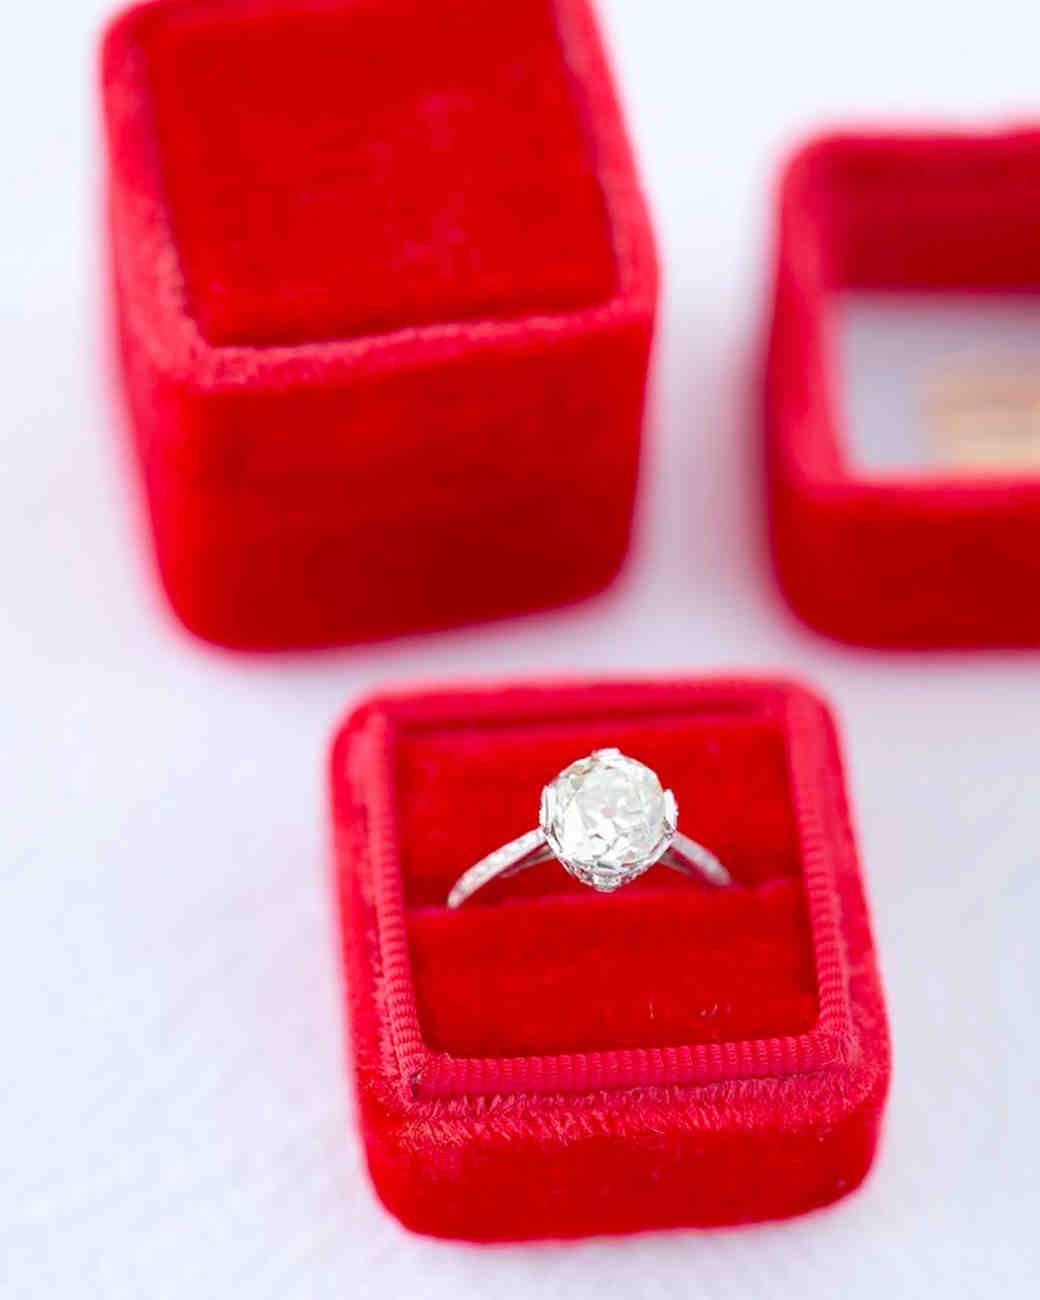 ring boxes have and hold your wedding bands keepsake wedding rings Ring Boxes to Have and to Hold Your Wedding Bands Martha Stewart Weddings